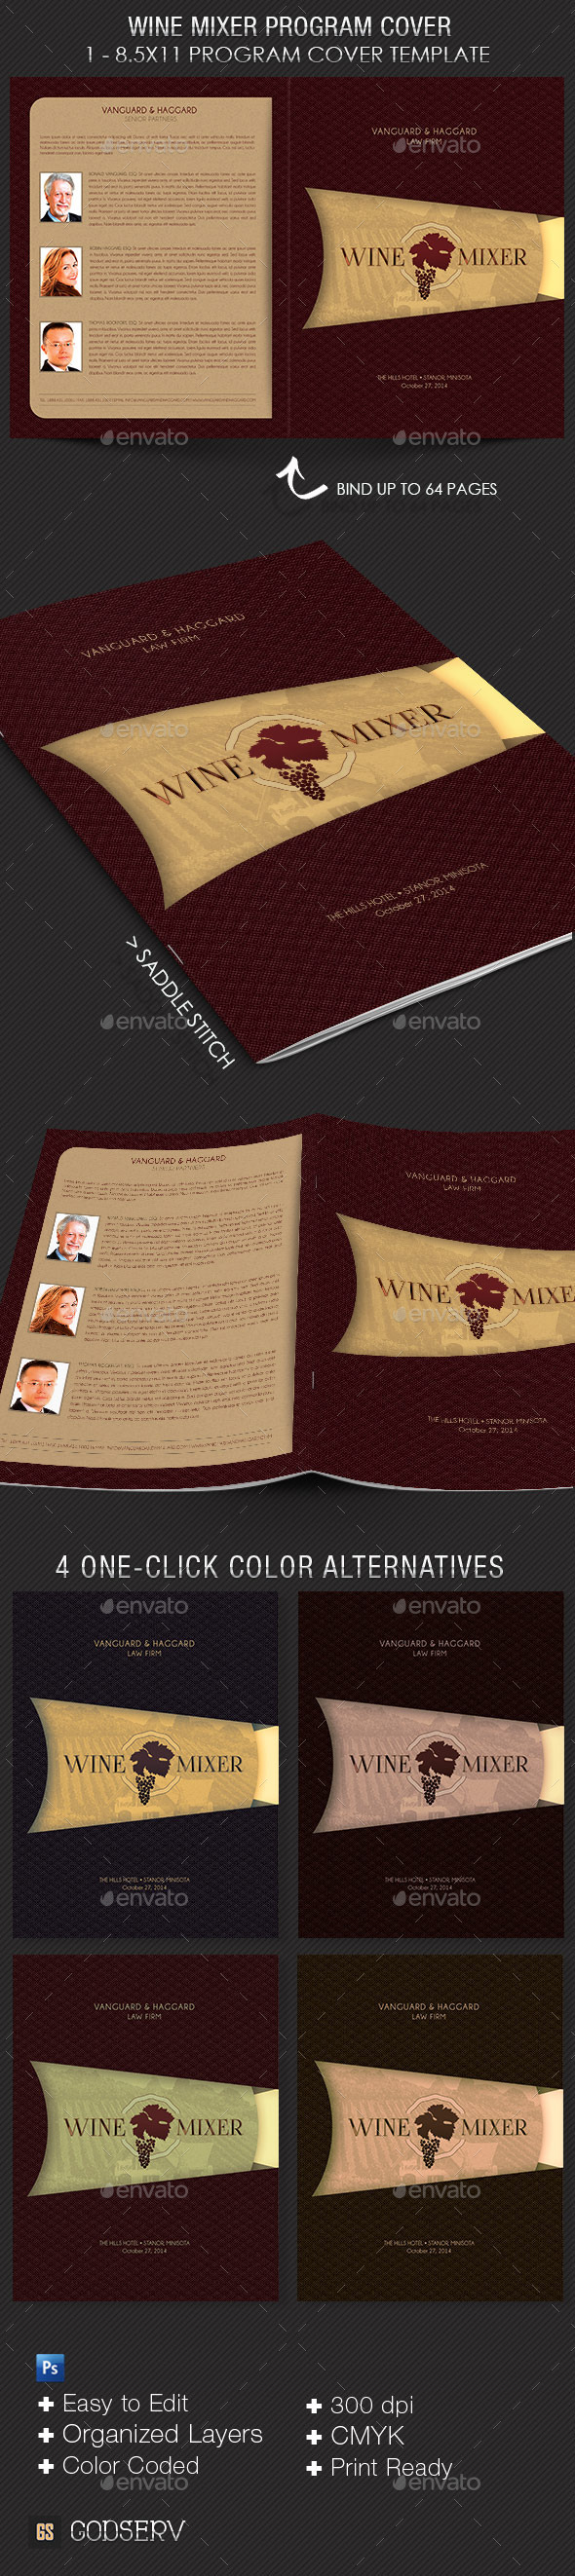 Wine and Chocolate Mixer Program Cover Template - Informational Brochures